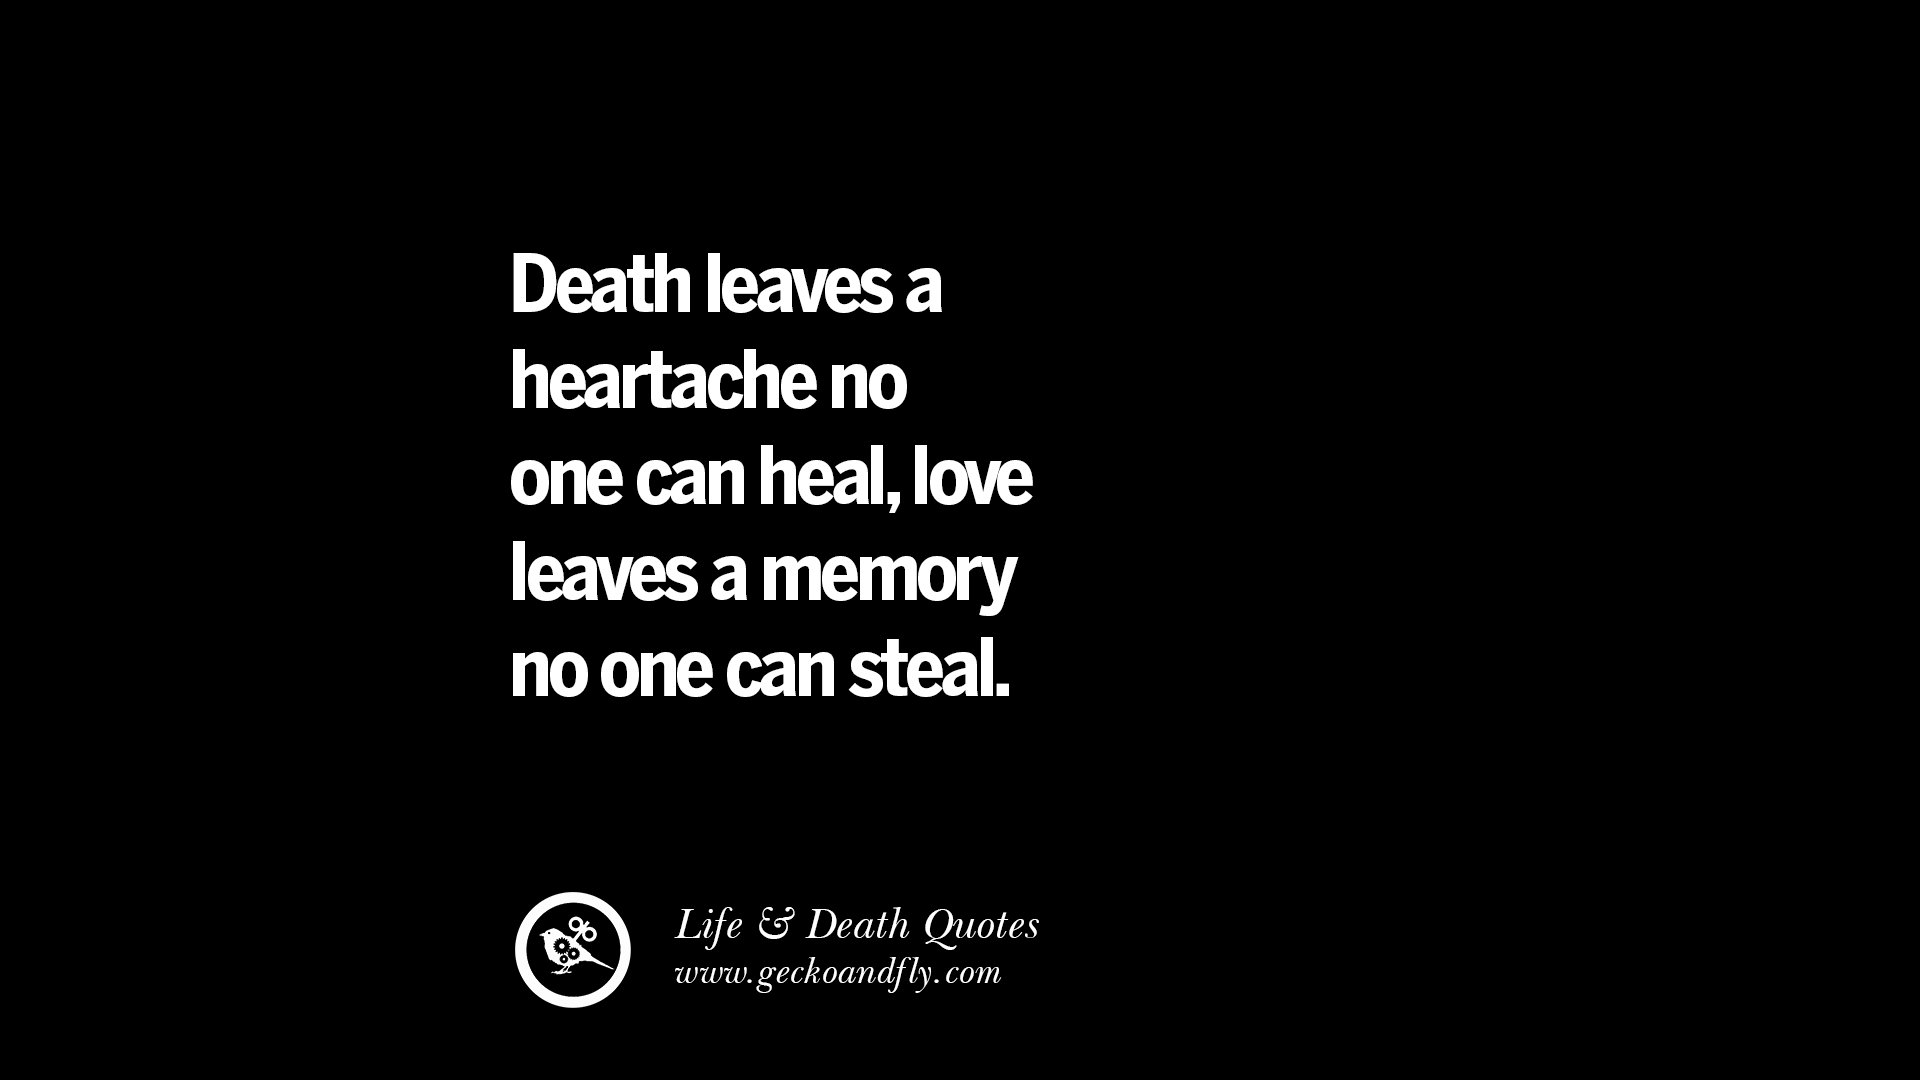 Quotes On Death 20 Inspirational Quotes On Life Death And Losing Someone